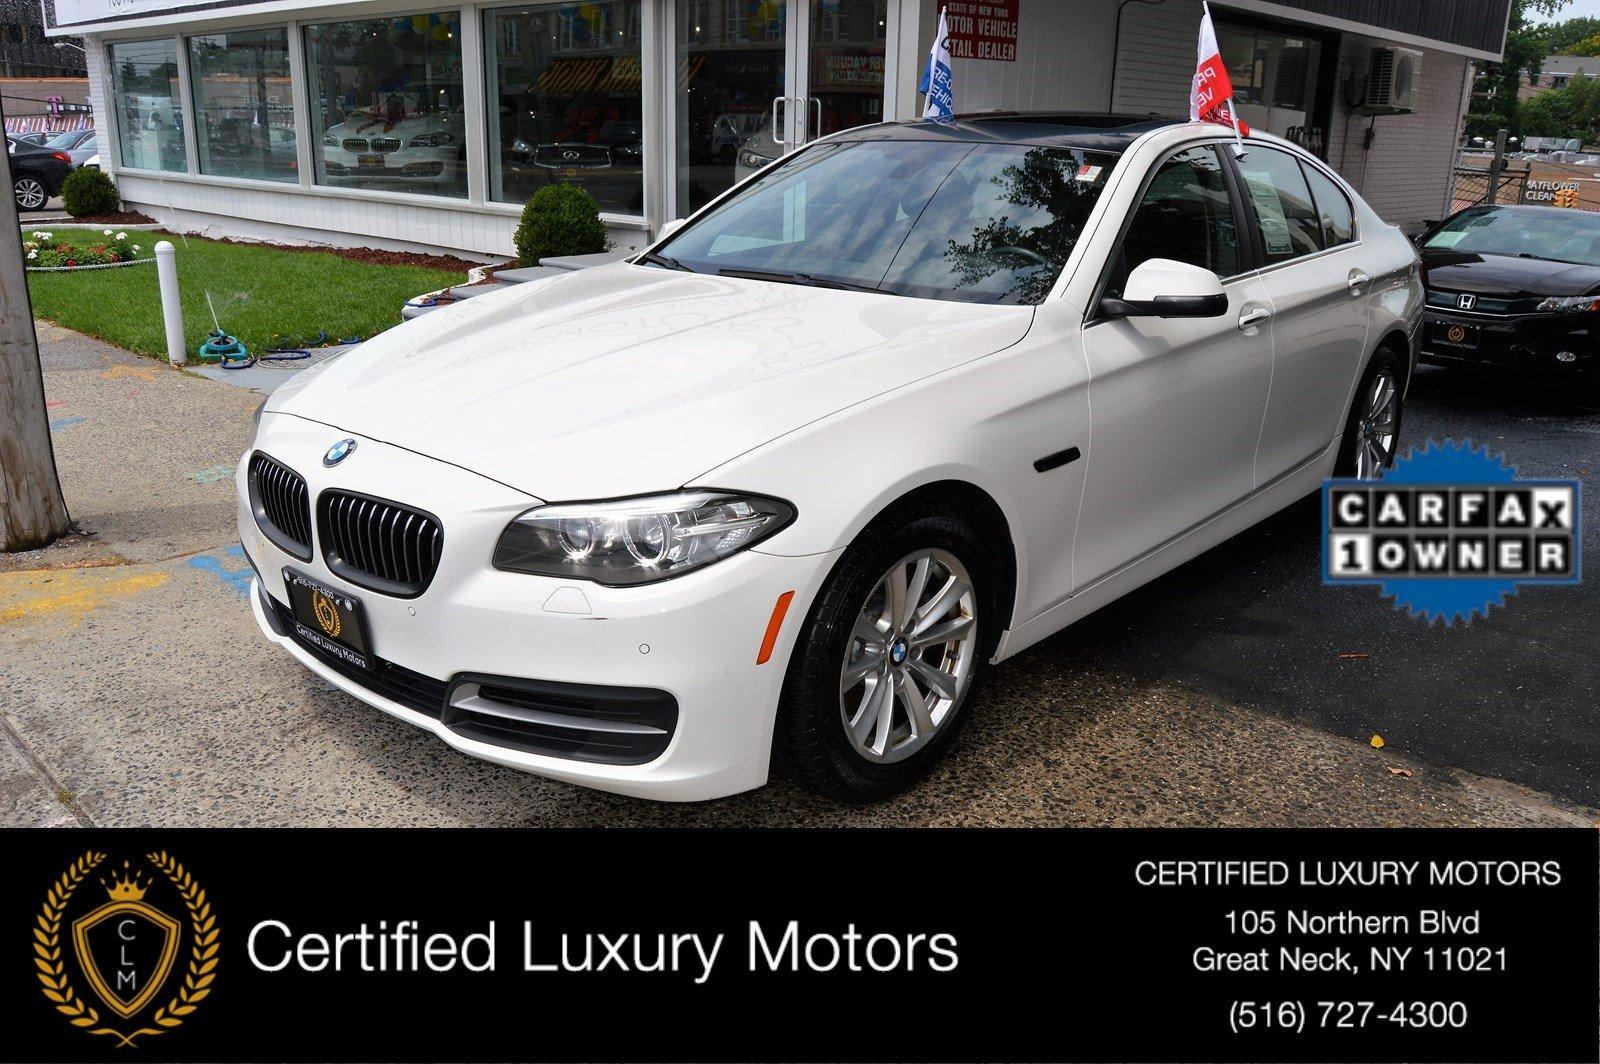 2014 bmw 5 series 528i xdrive stock 8773 for sale near for Certified luxury motors great neck ny